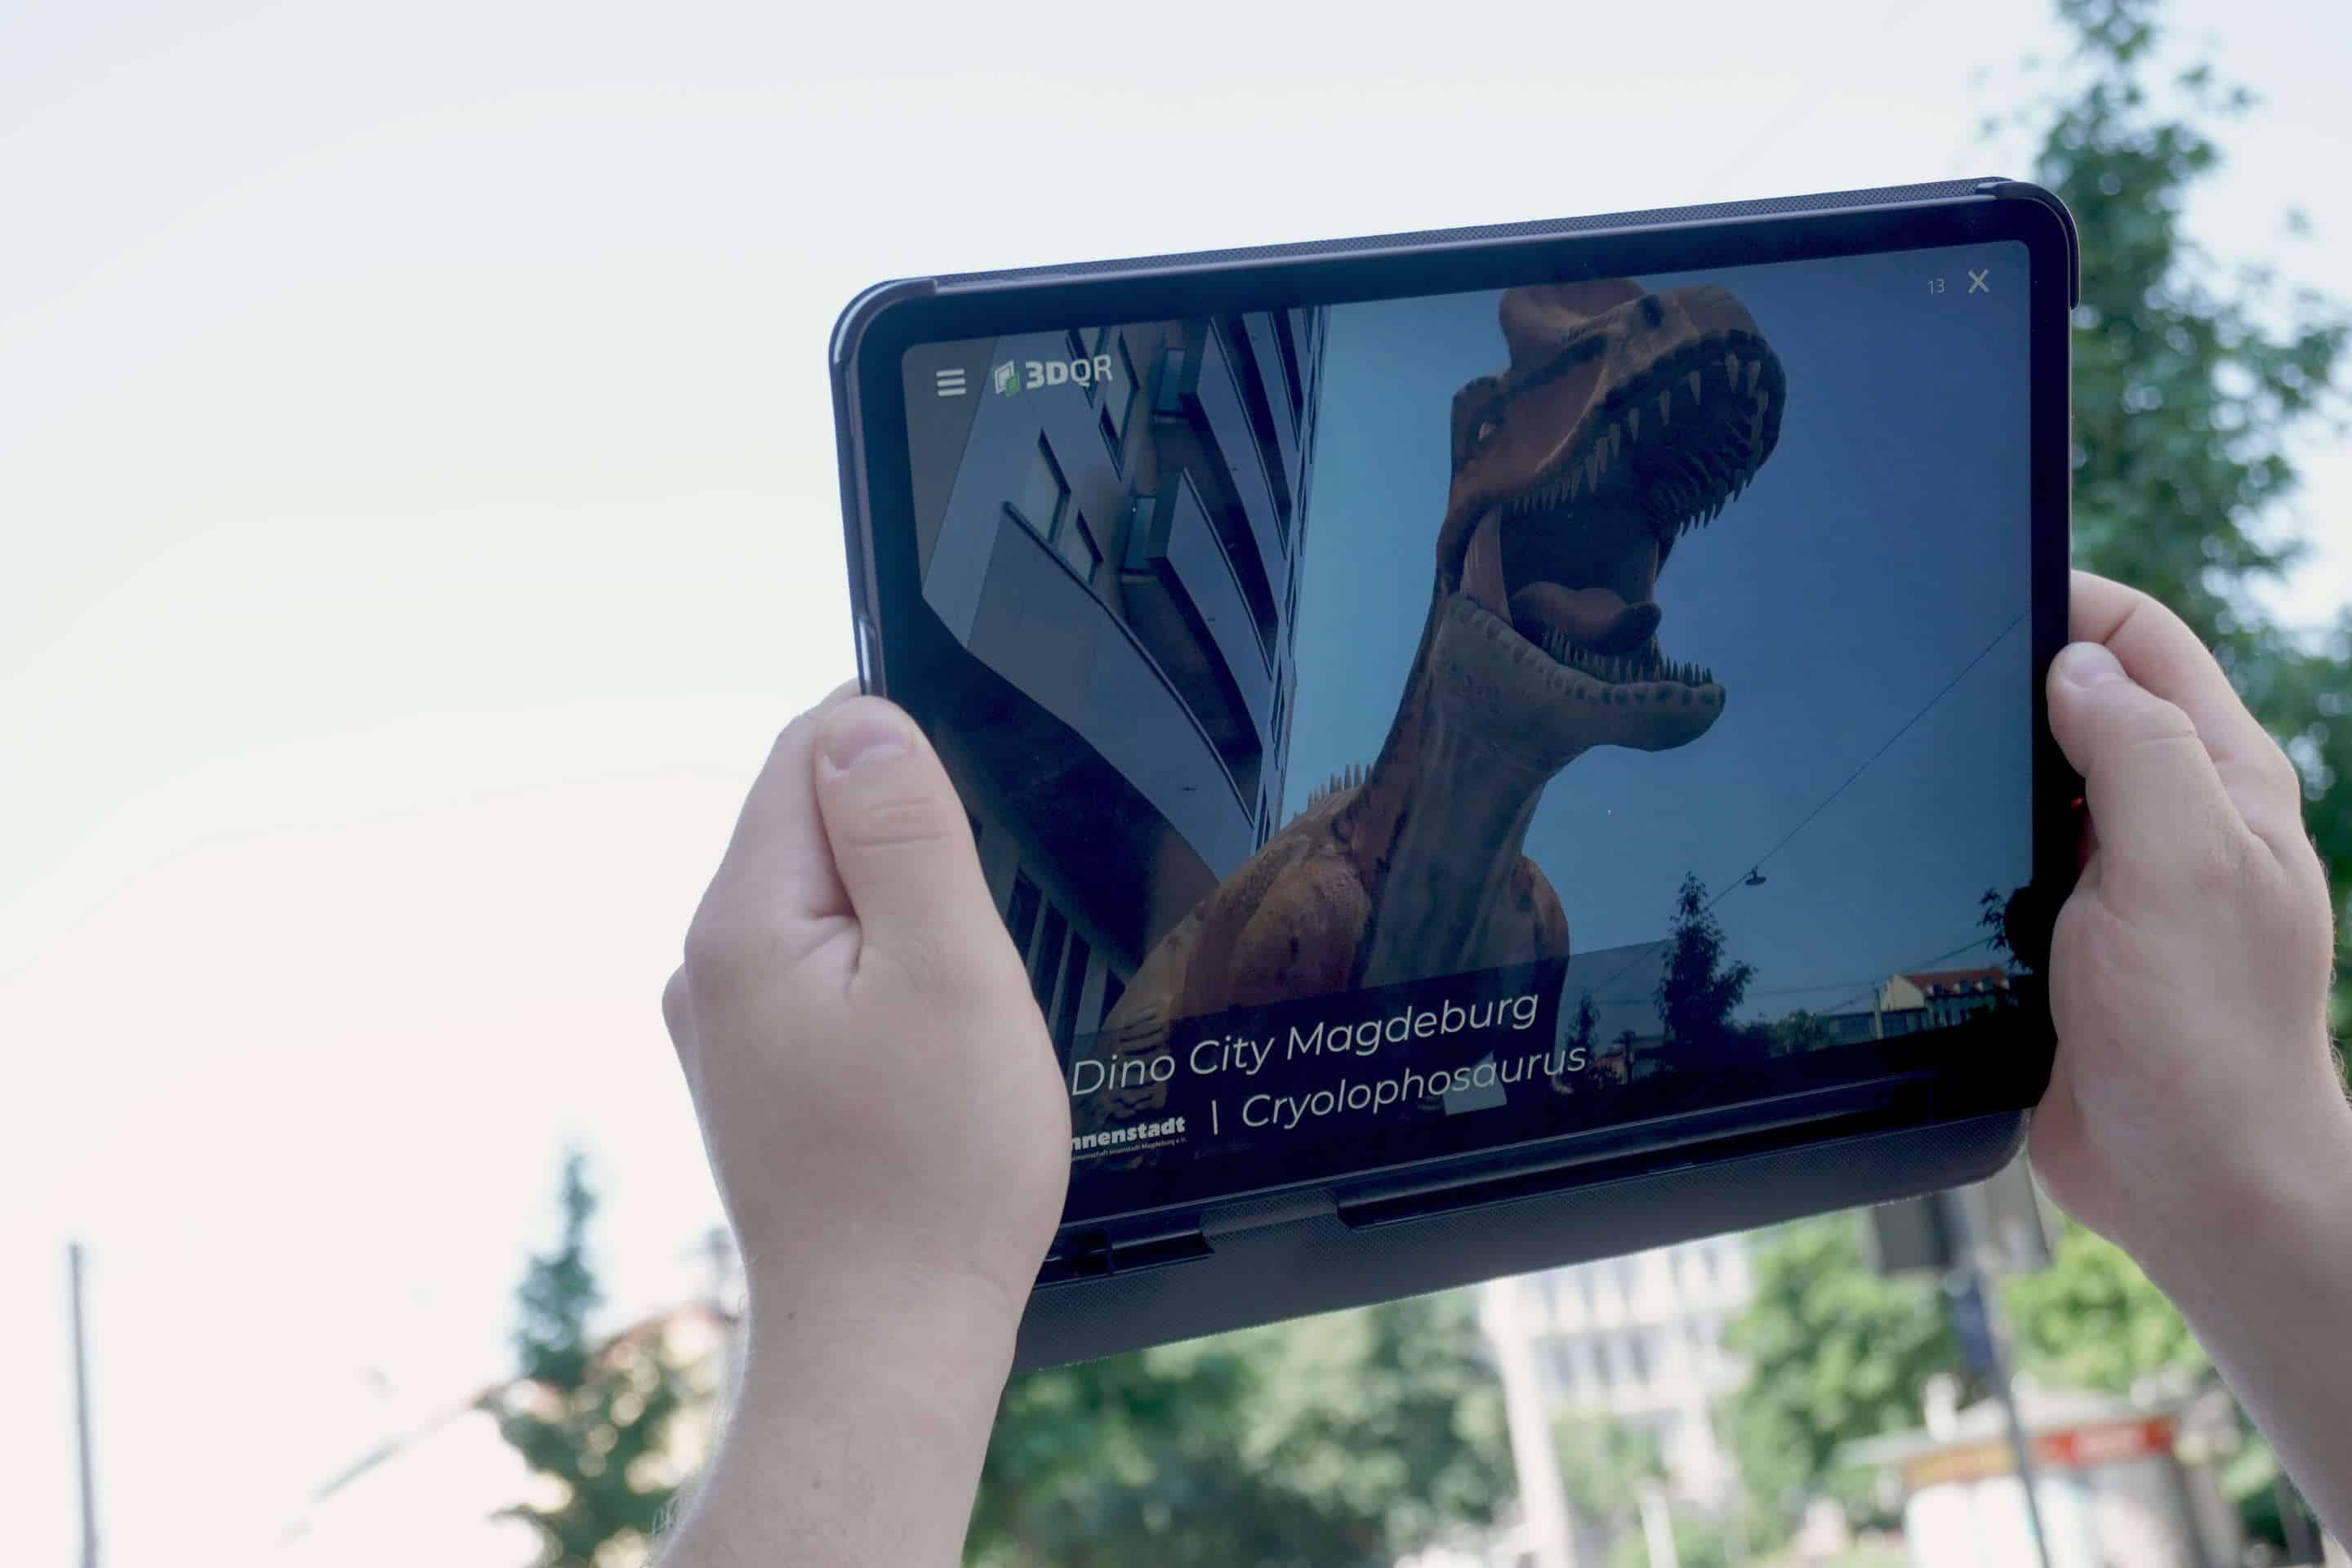 Augmented Reality Anwendung auf dem Tablet